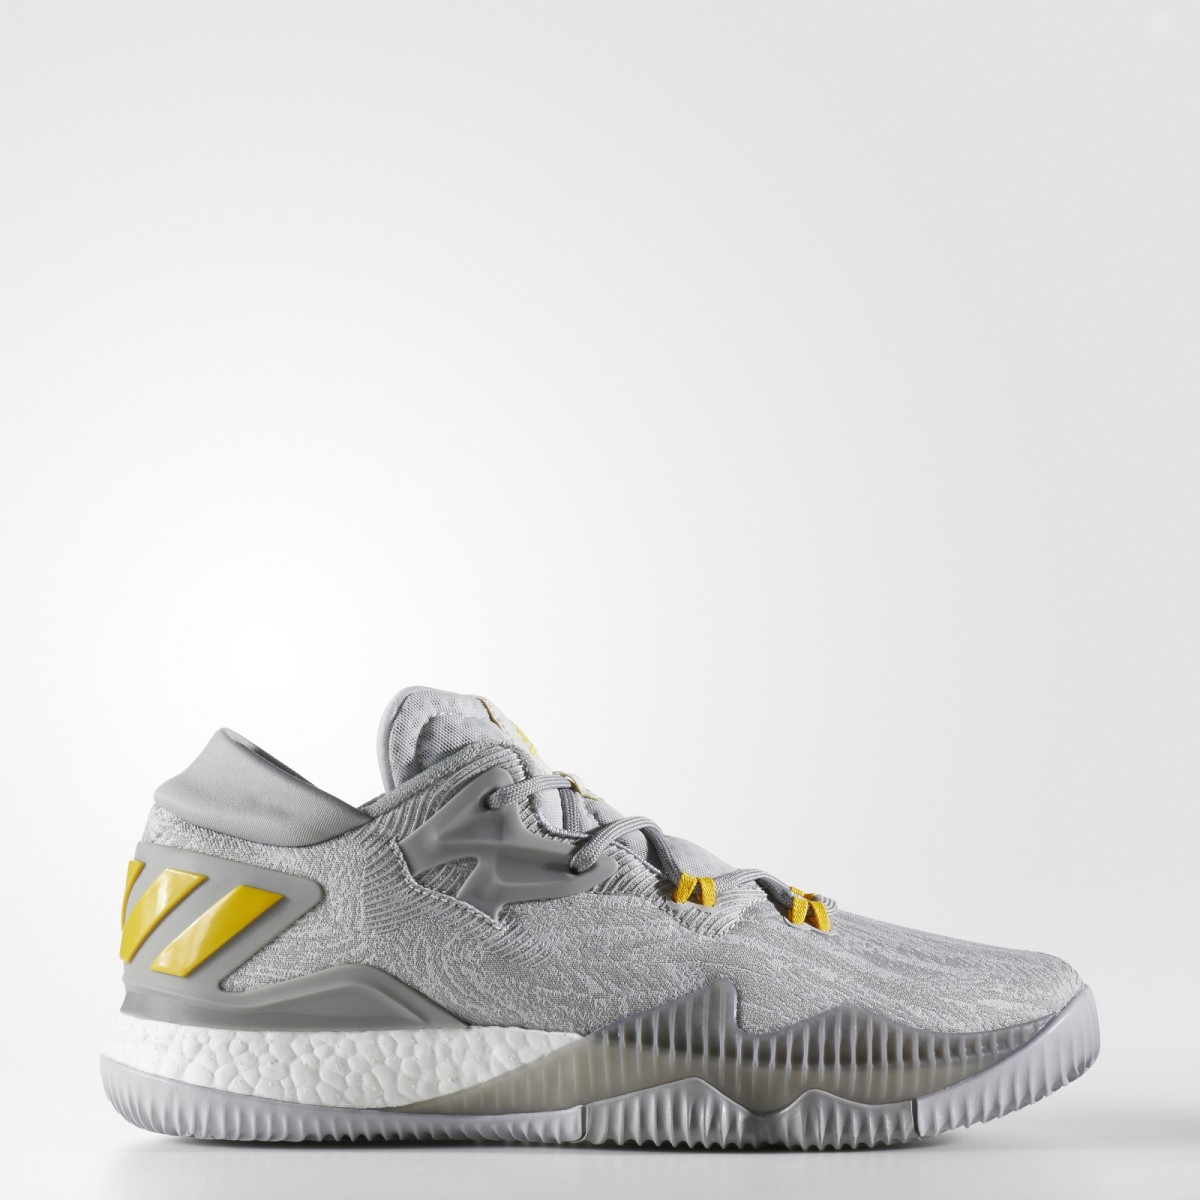 ADIDAS Crazy Light Boost 2016 'Grey'